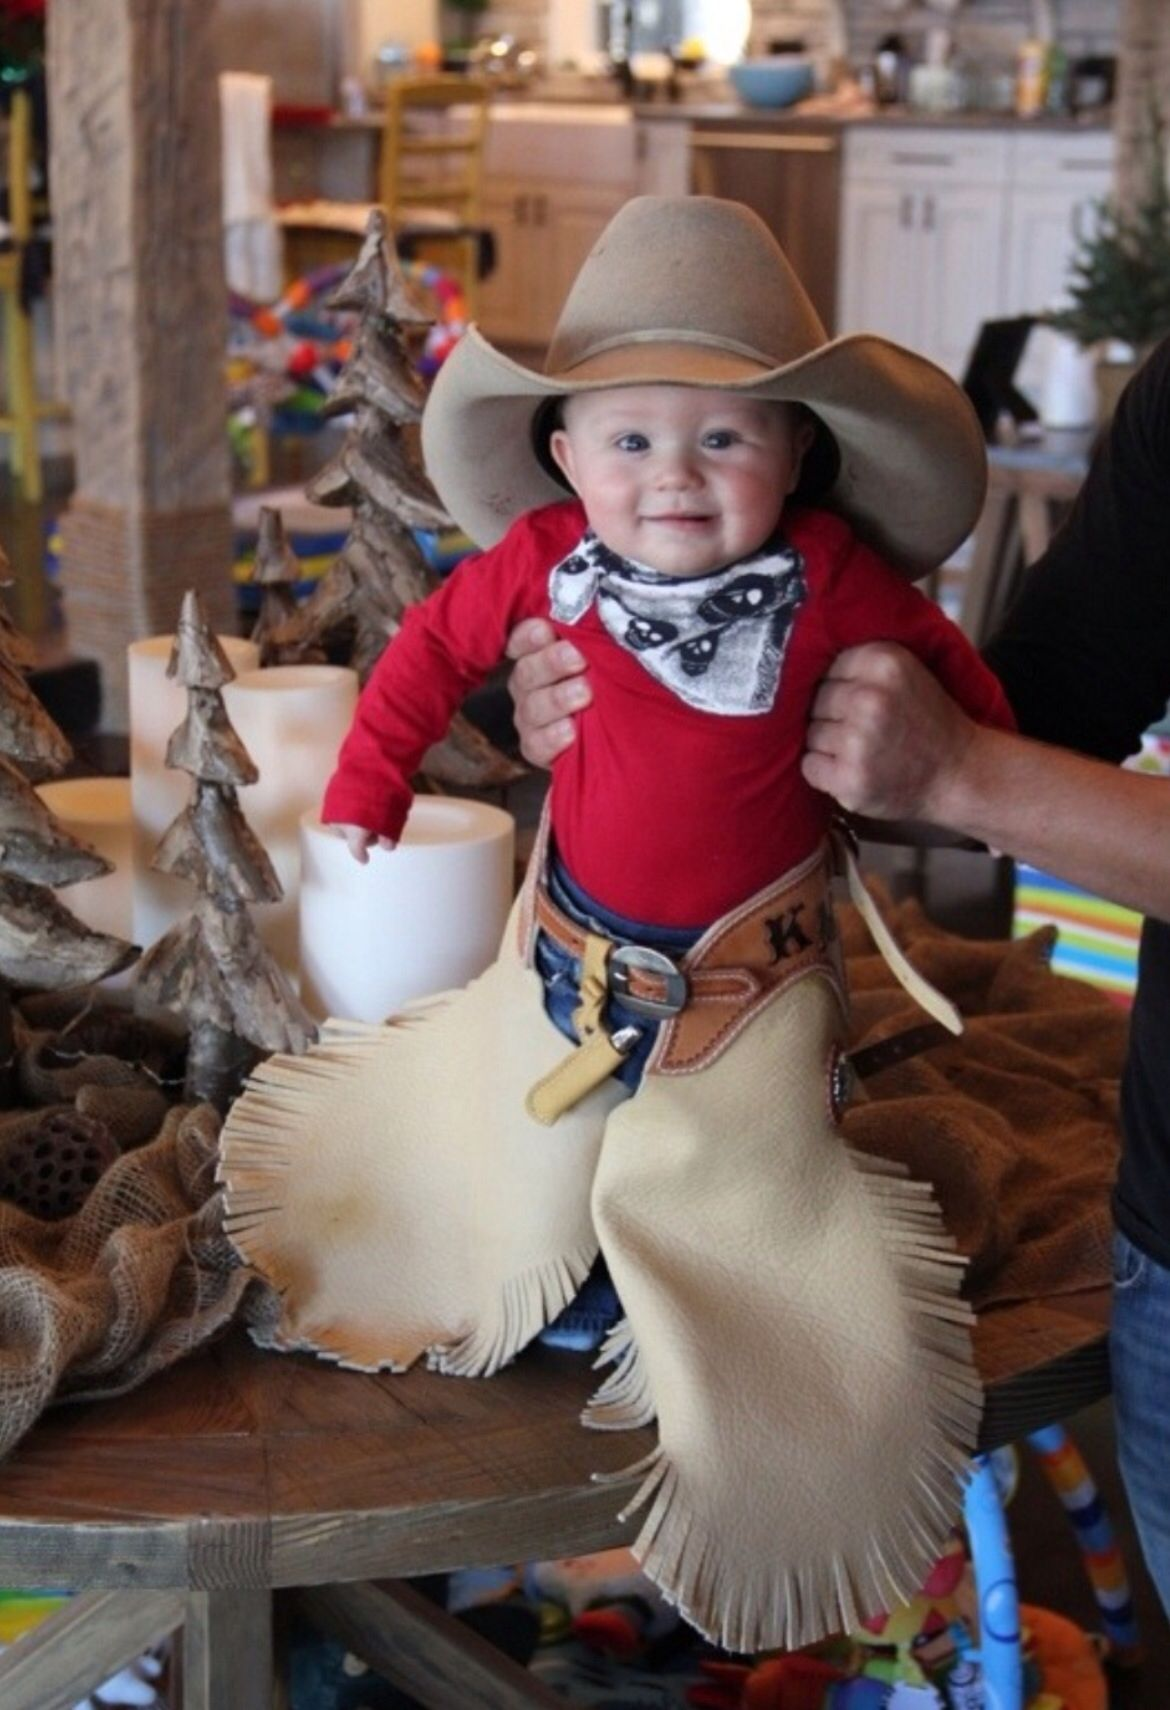 Jewel and Ty Murray's lil guy, Kase. How adorable is he ...